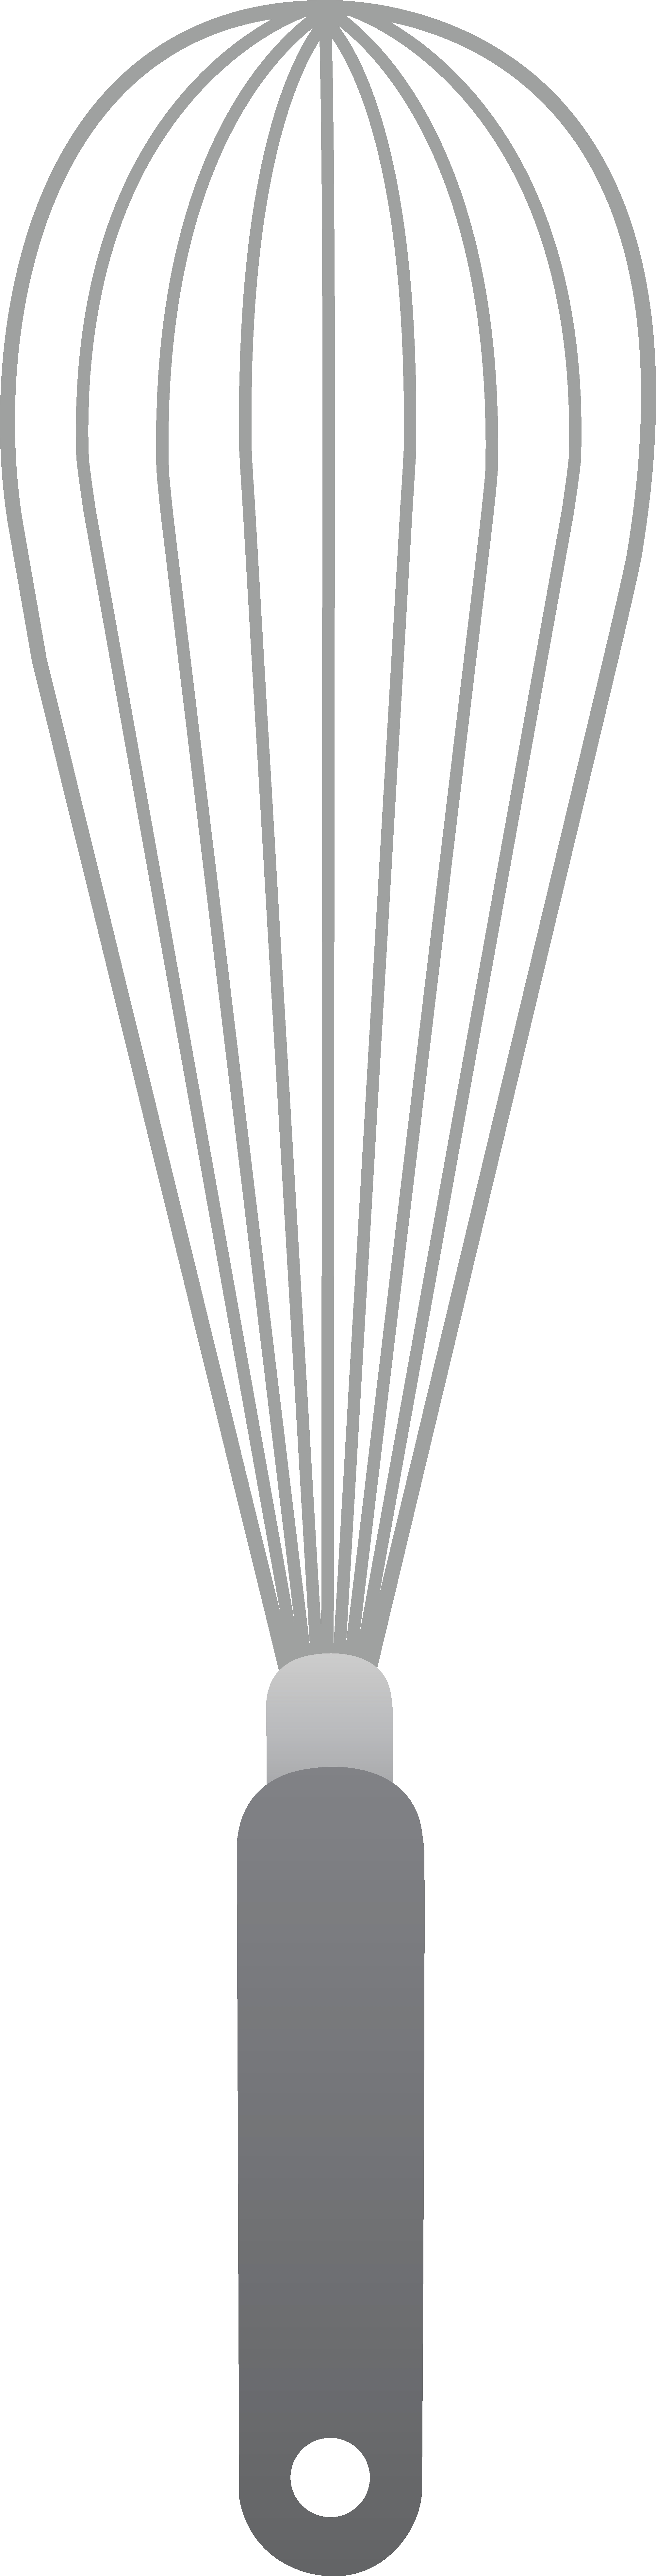 Baking clipart whisk. Fresh collection digital coloring